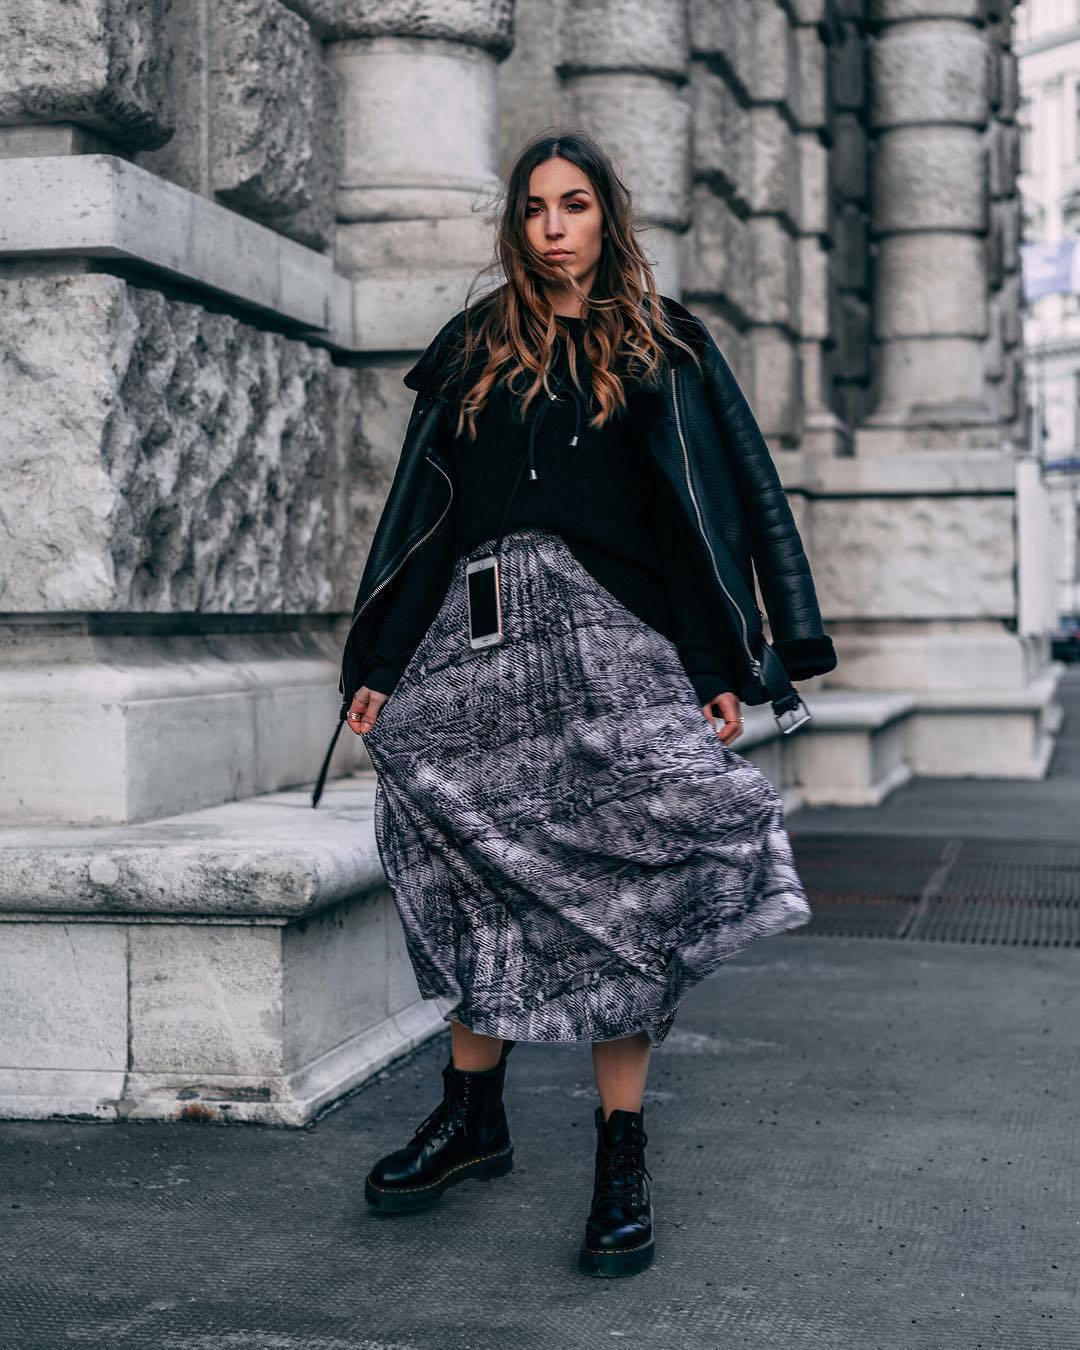 skirt midi skirt snake print grey skirt pleated skirt black boots ankle boots lace up boots platform shoes black jacket black shearling jacket black sweater